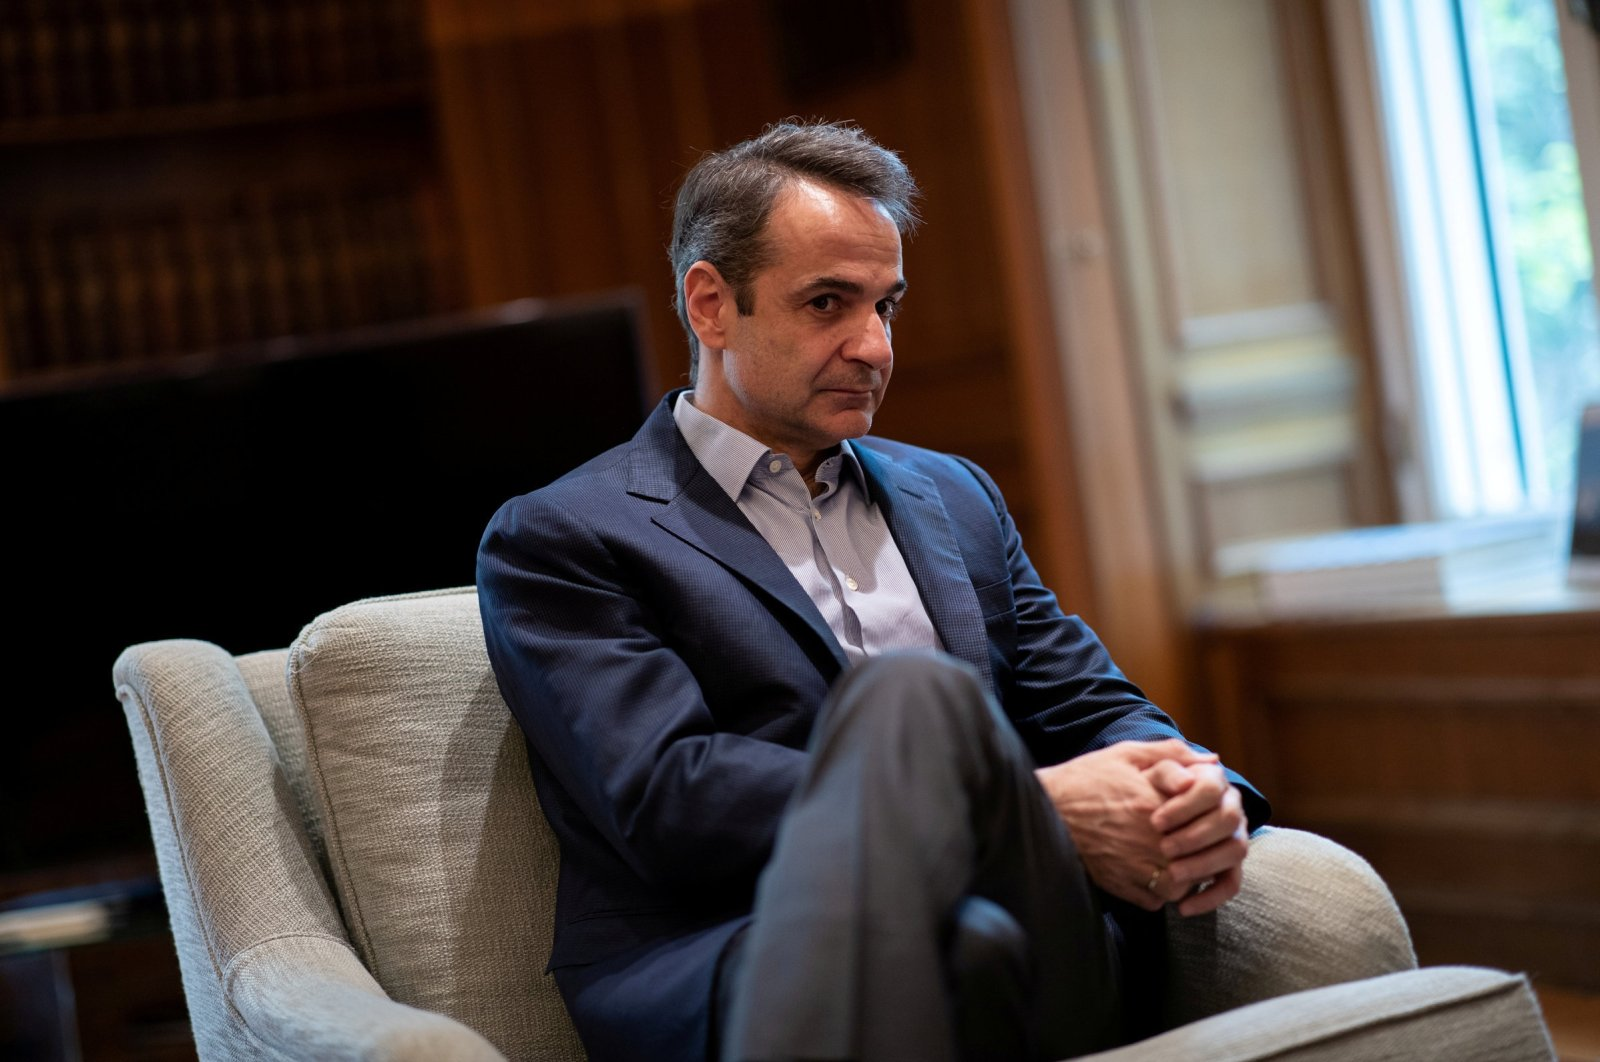 Greek Prime Minister Kyriakos Mitsotakis looks on before his meeting with Managing Director of the European Stability Mechanism Klaus Regling in his office in the Maximos Mansion in Athens, Greece, March 7, 2020. (Reuters Photo)